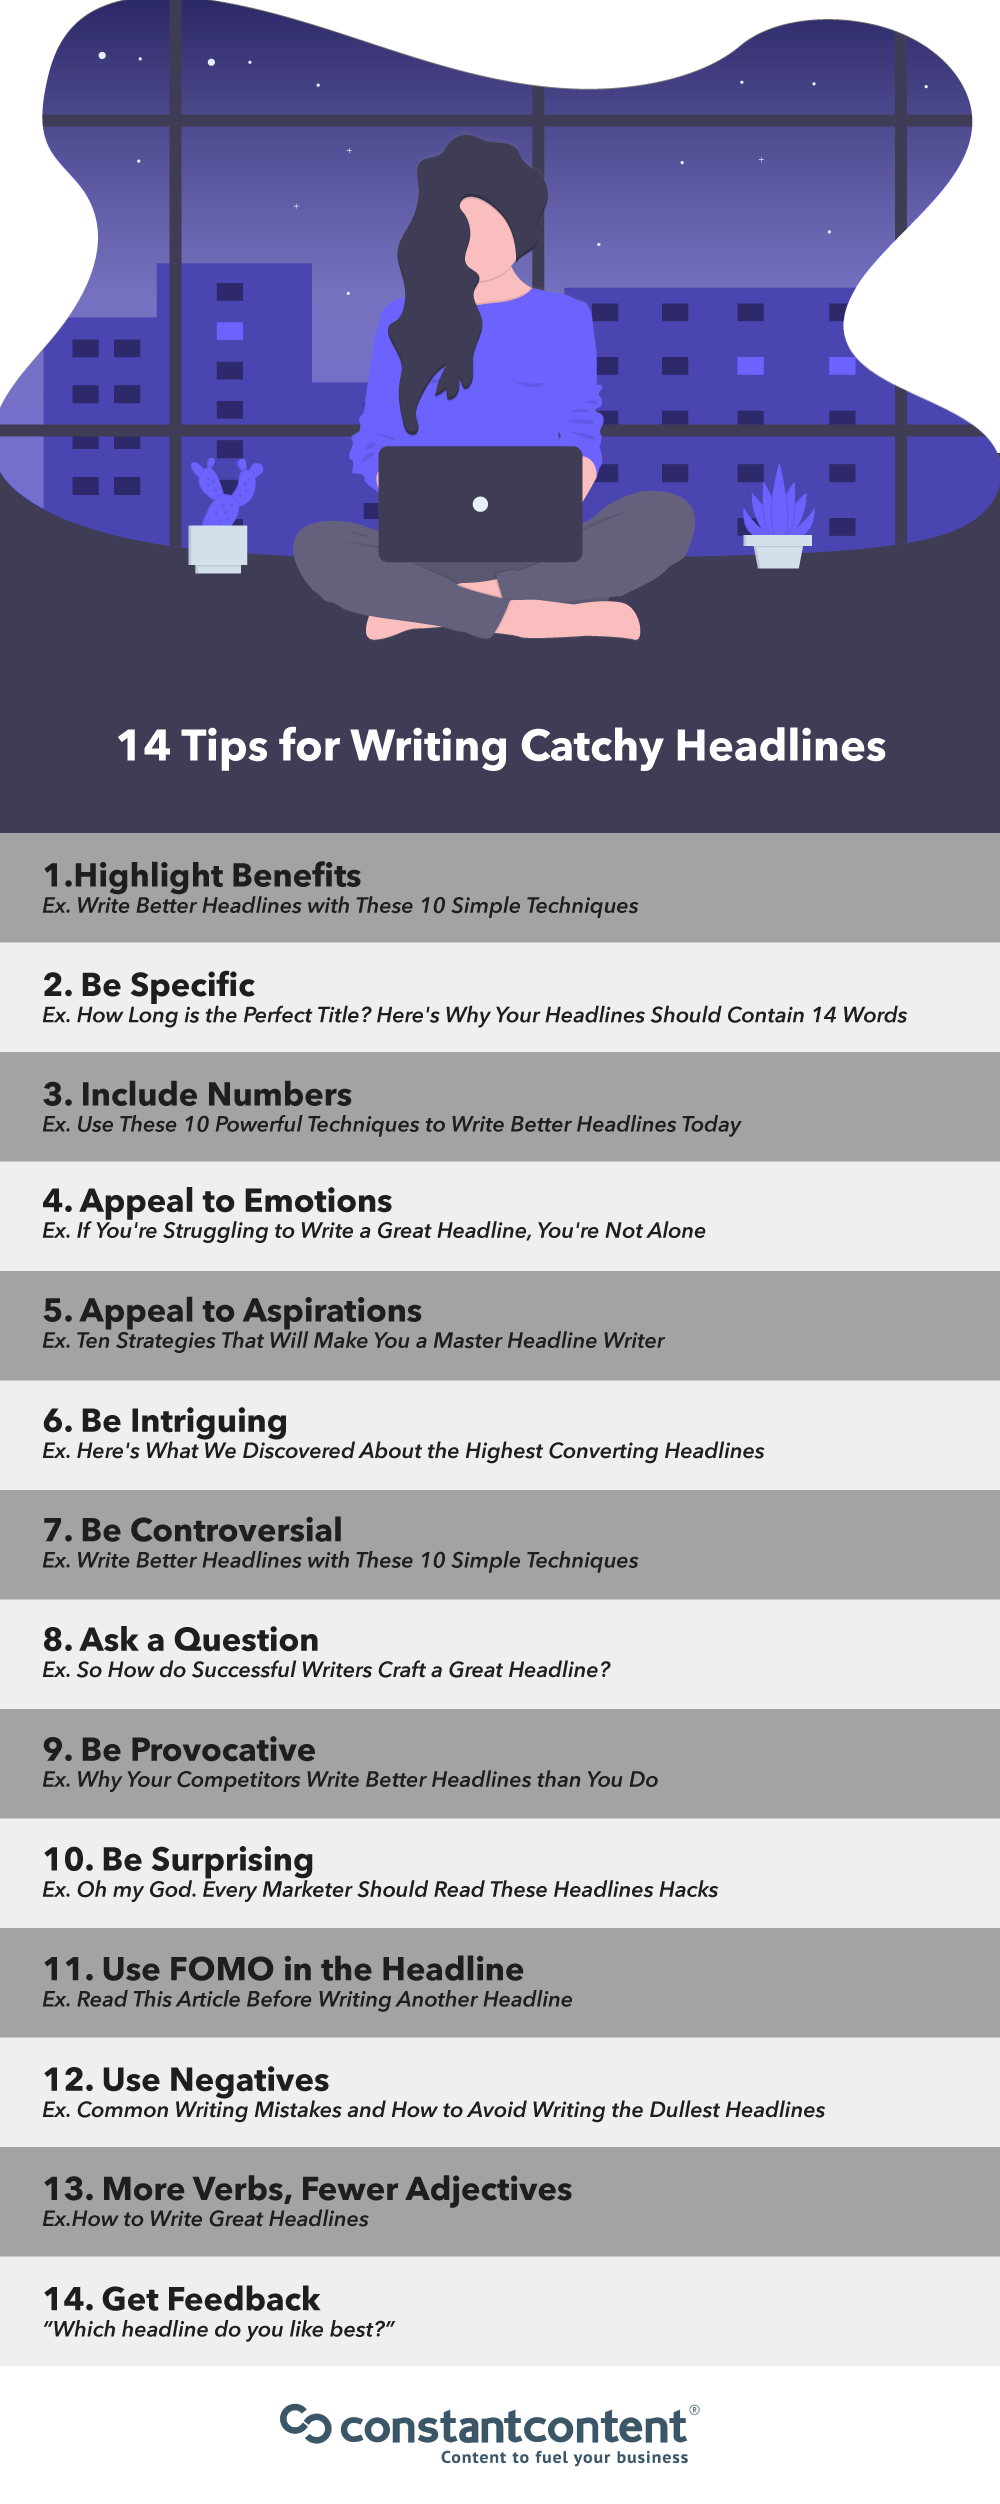 Articles need great healdlines Here are 27 tips to help write